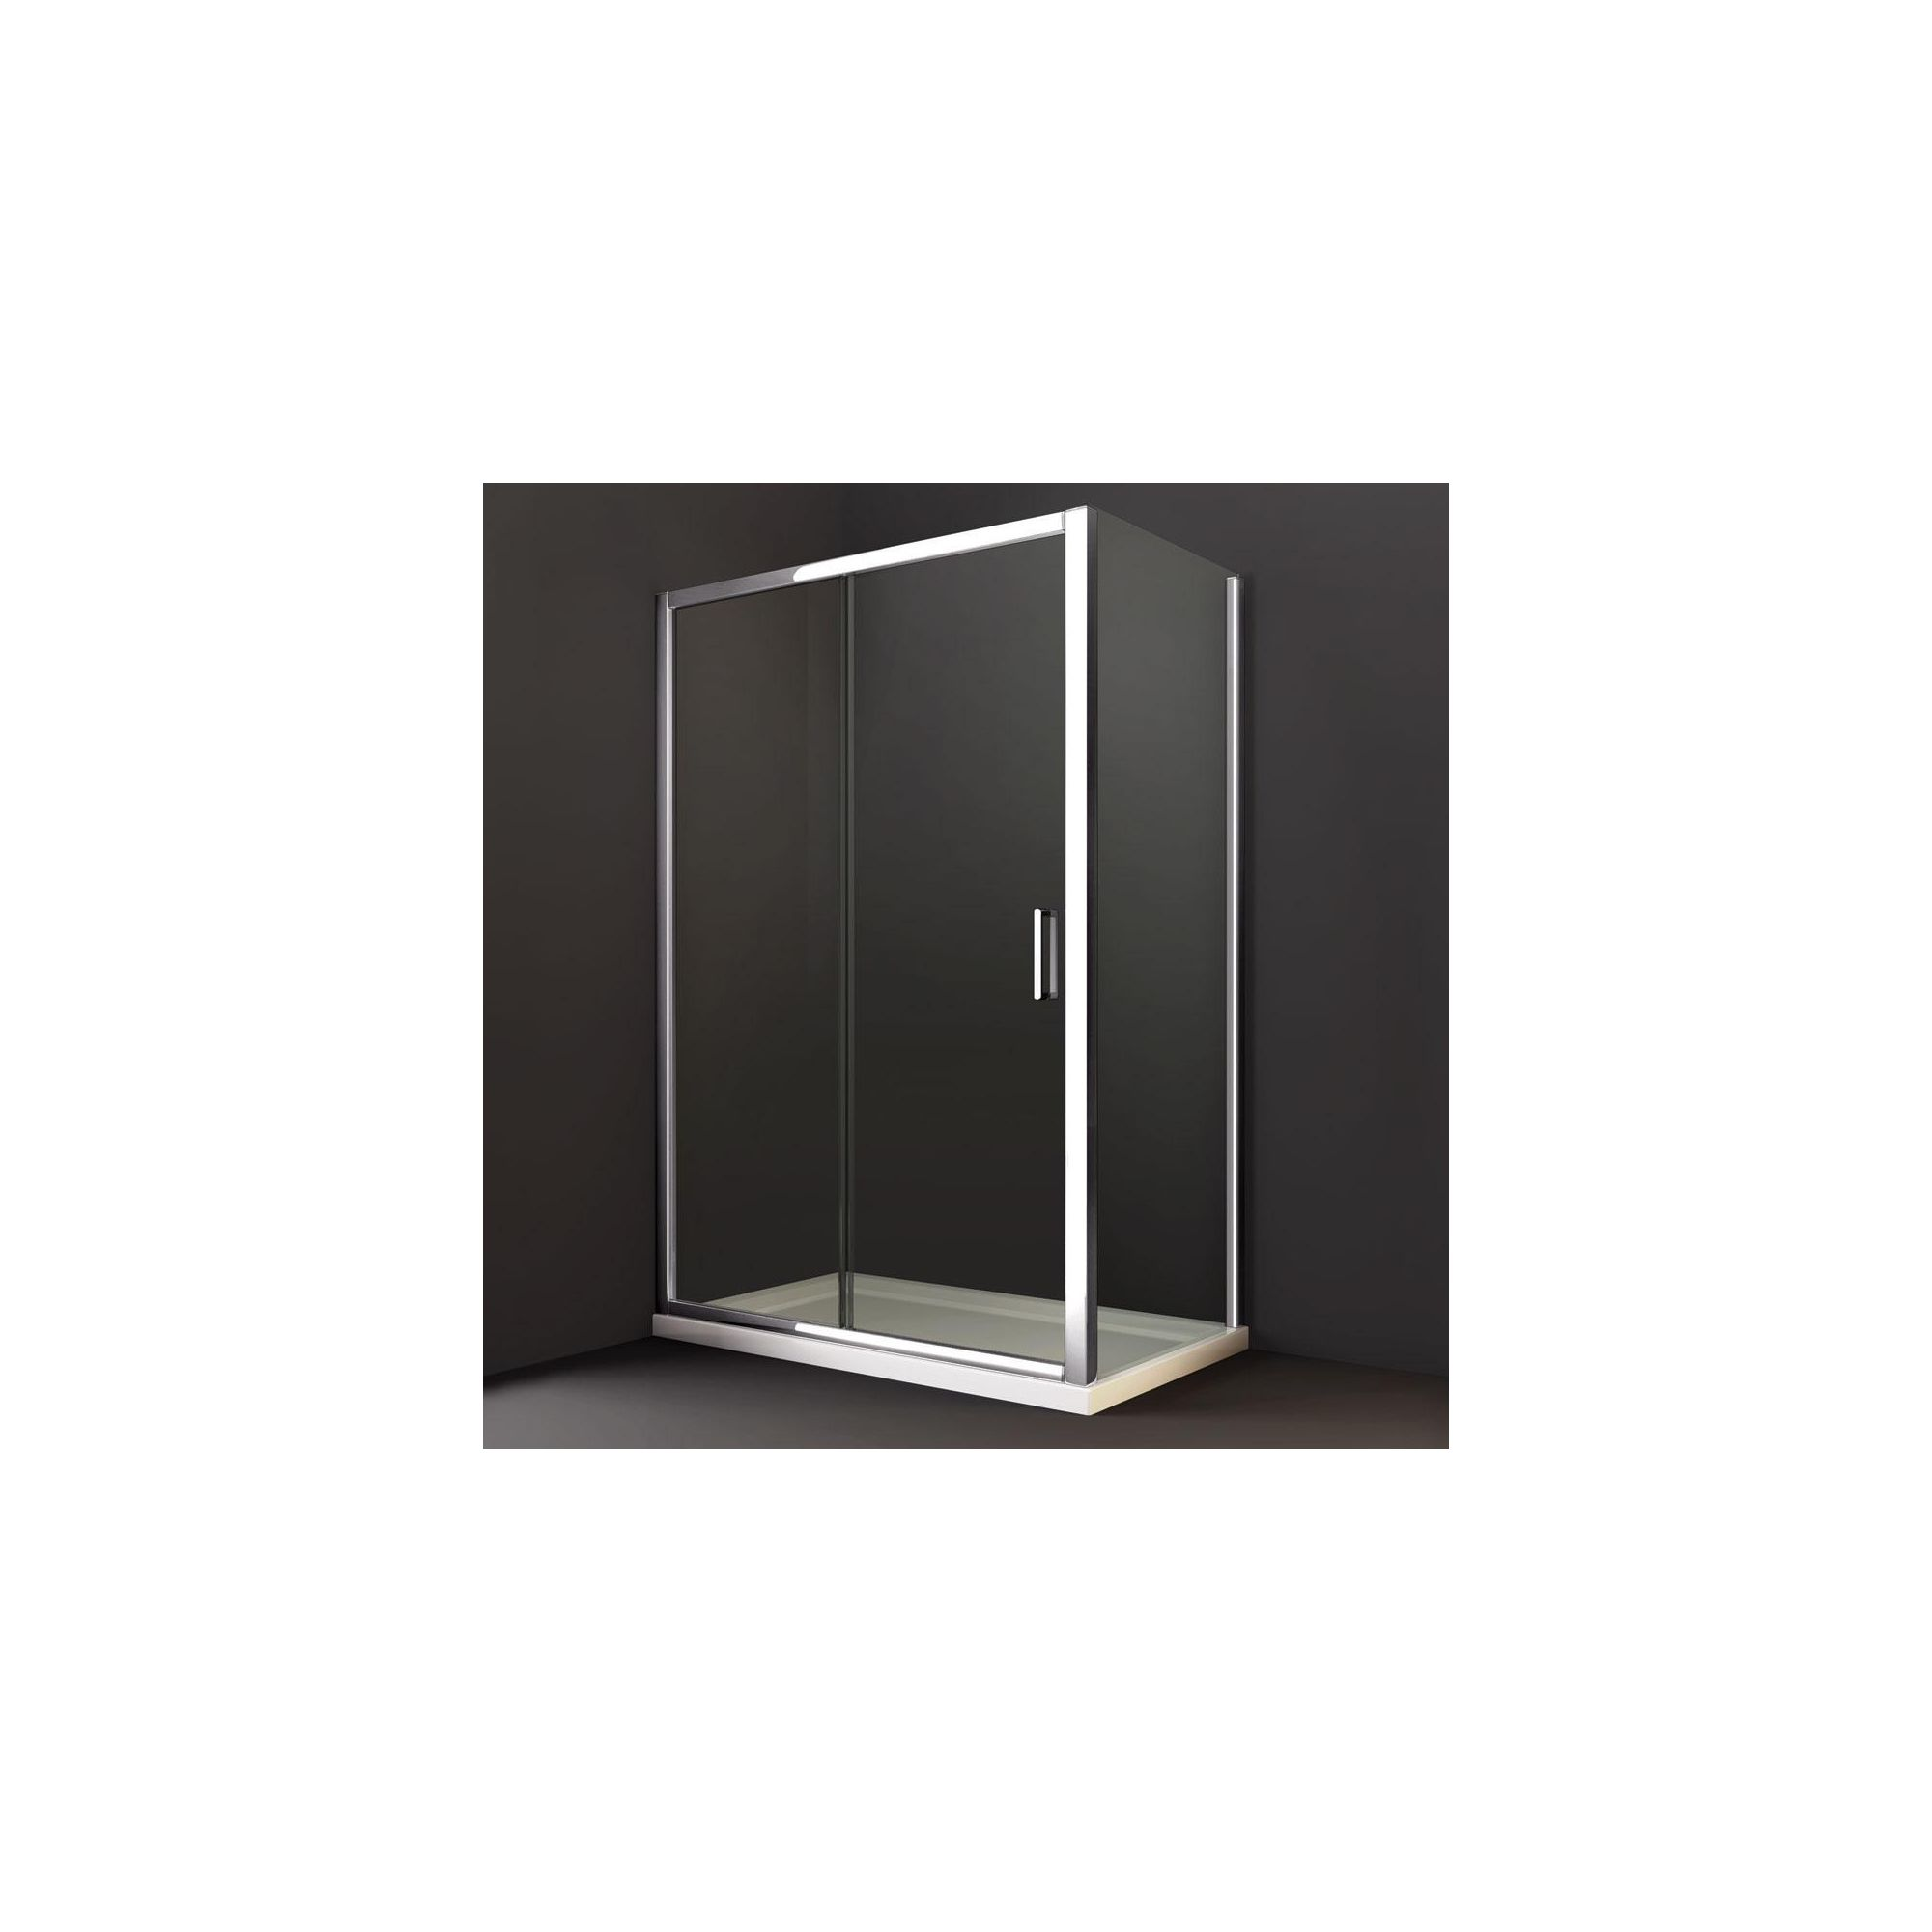 Merlyn Series 8 Sliding Shower Door, 1500mm Wide, Chrome Frame, 8mm Glass at Tesco Direct